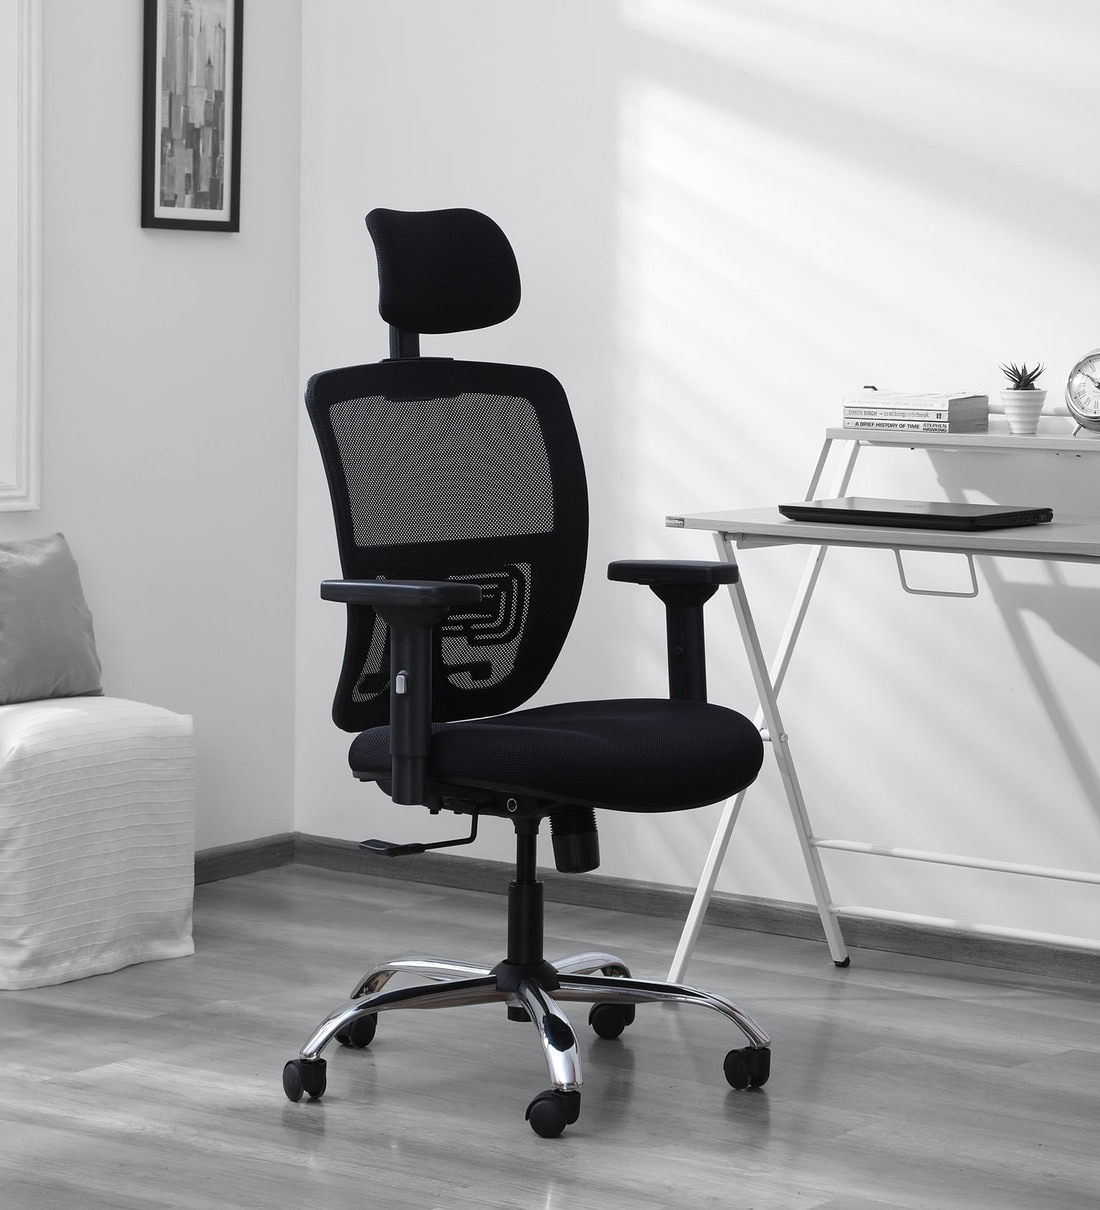 Storm Lx High Back Ergonomic Chair In, Ergonomic Office Chair India